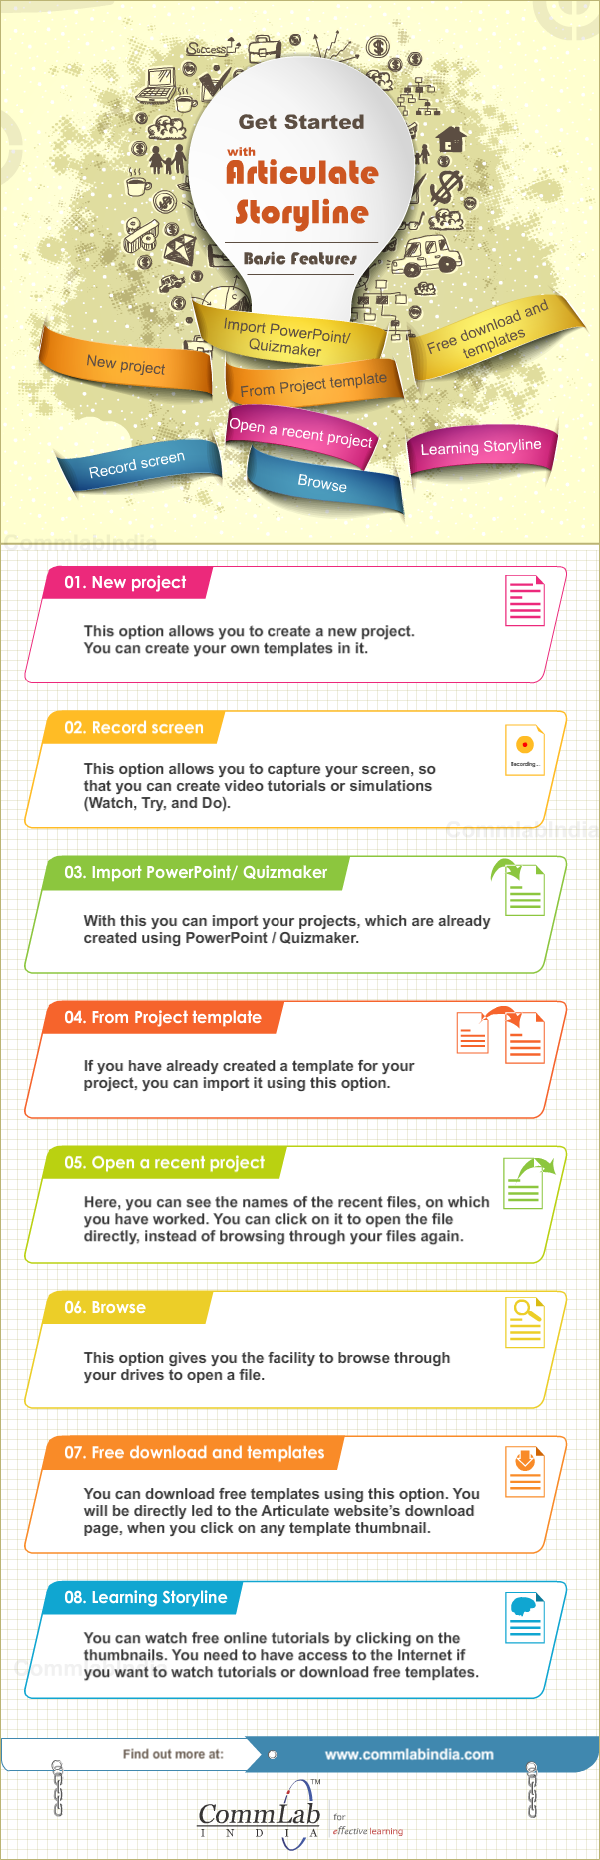 Getting Started With Articulate Storyline – An Infographic